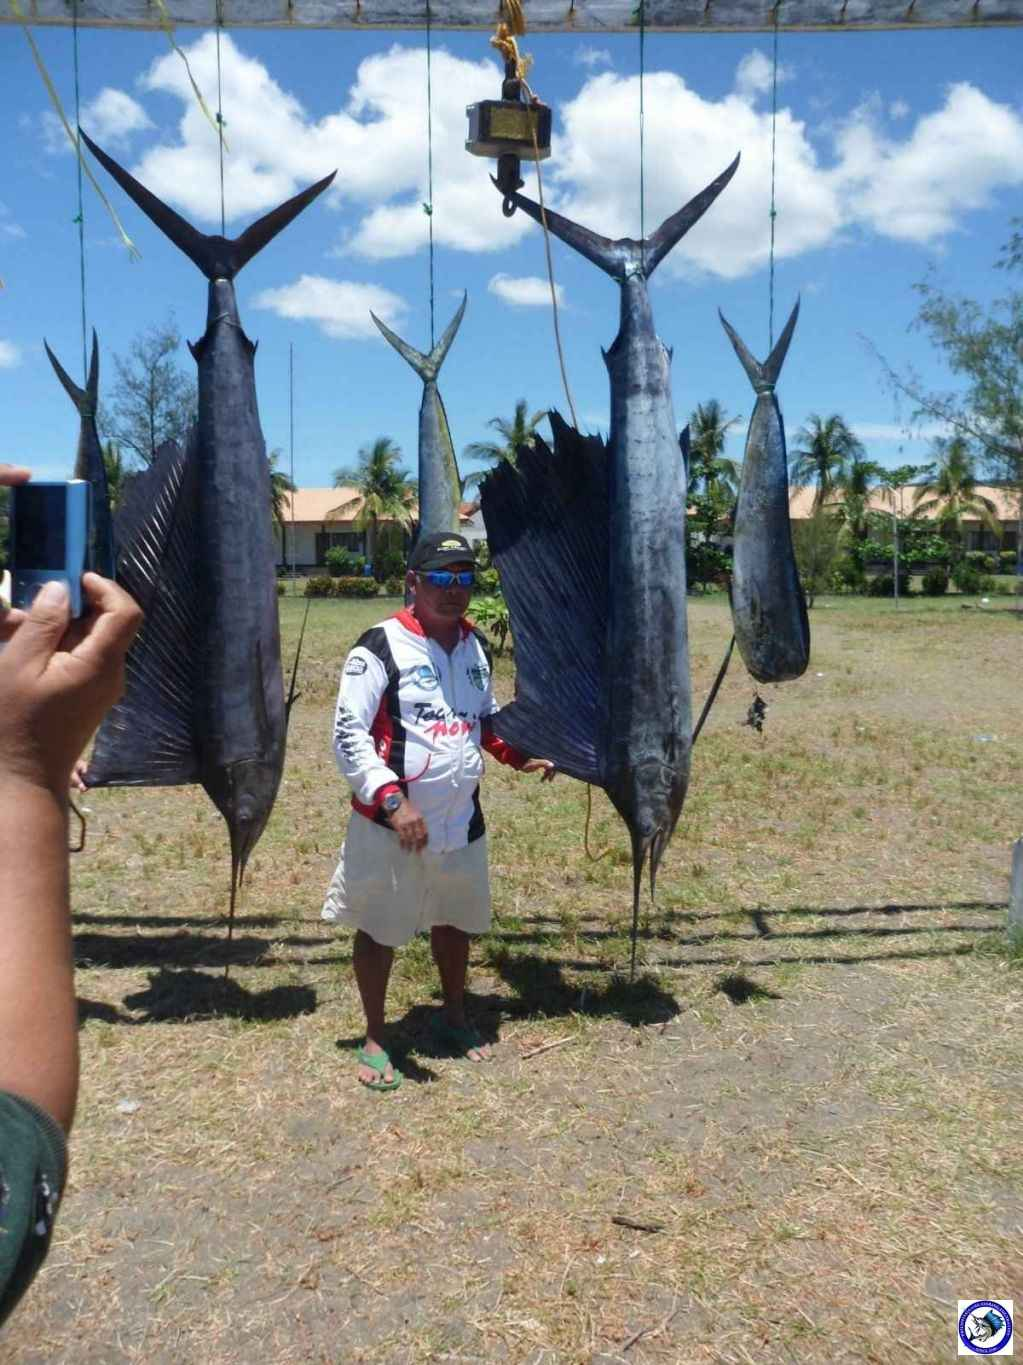 philippine sport fishing_1683.jpg